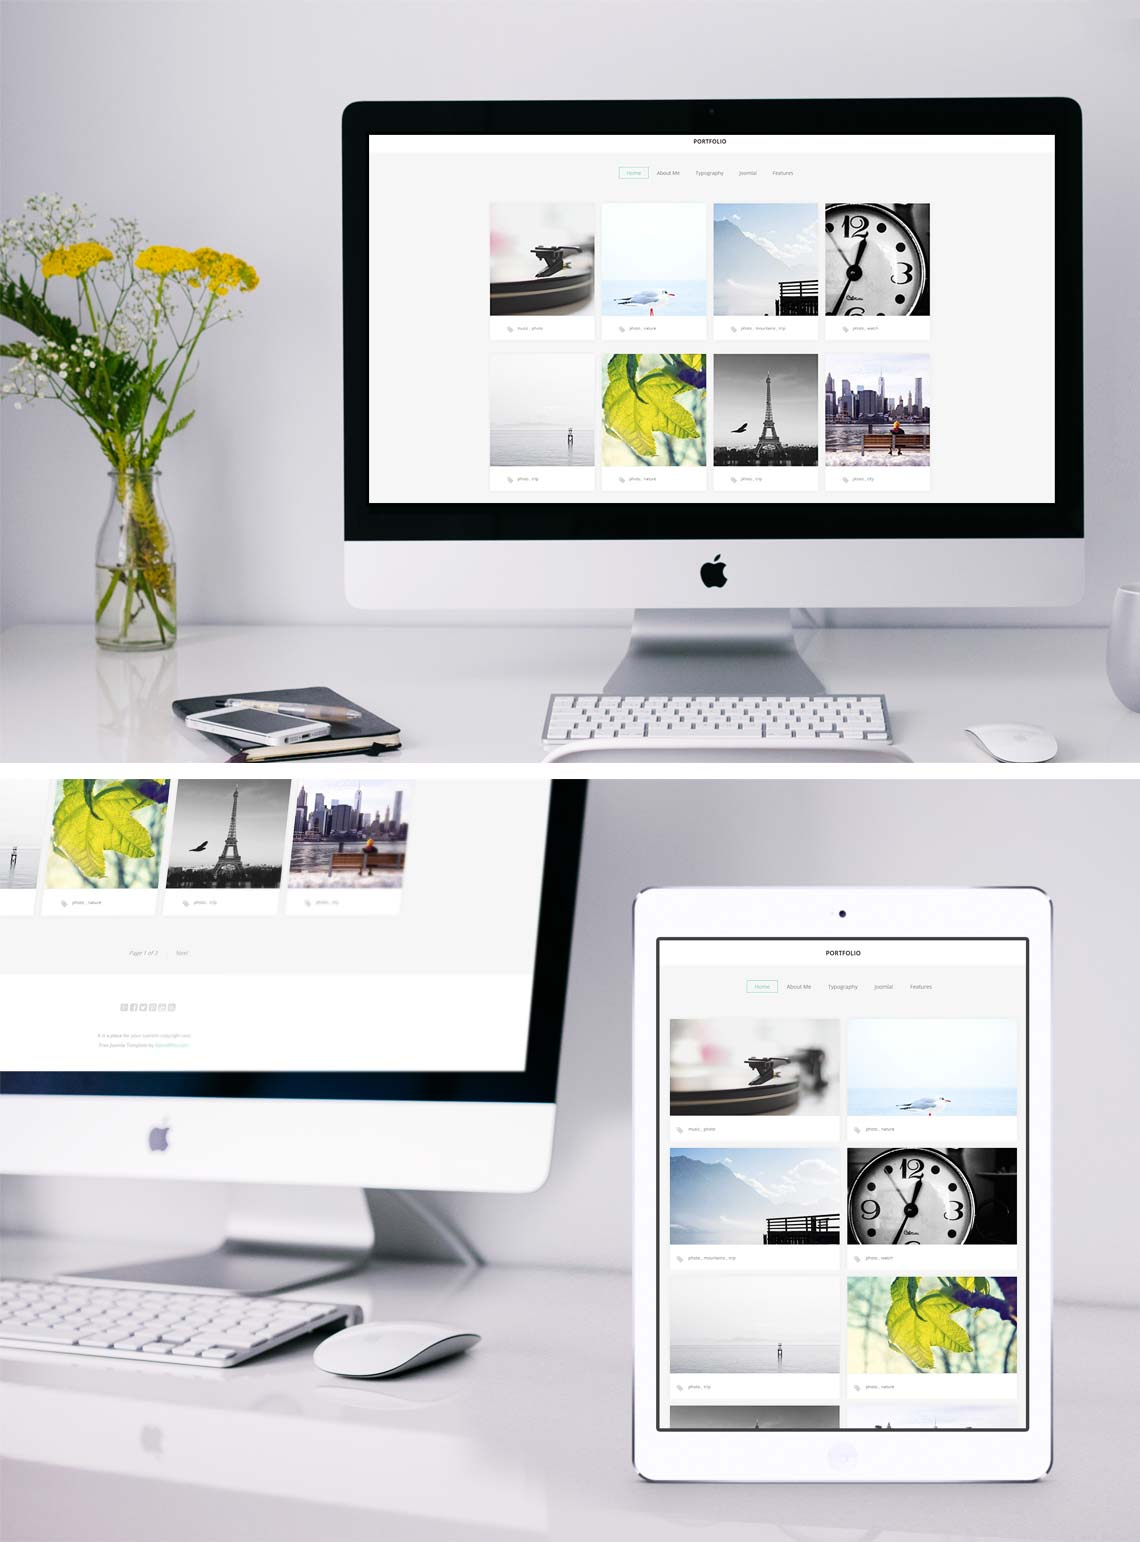 joomla backend templates - photographer portfolio template joomla 3 5 free